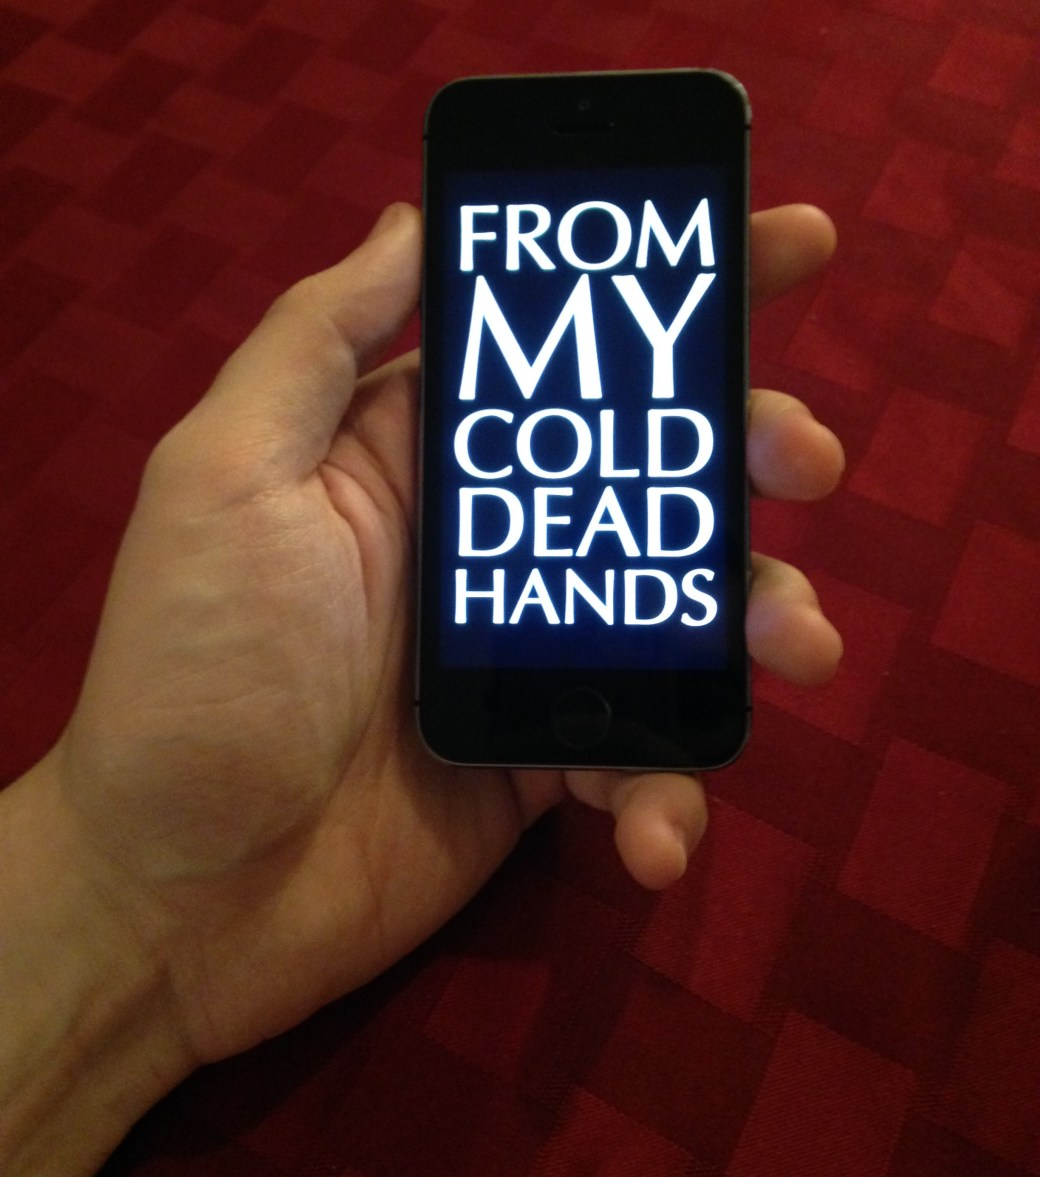 "A closeup of a hand holding an iPhone. The iPhone's screen says, ""FROM MY COLD DEAD HANDS"" in a dramatic font."